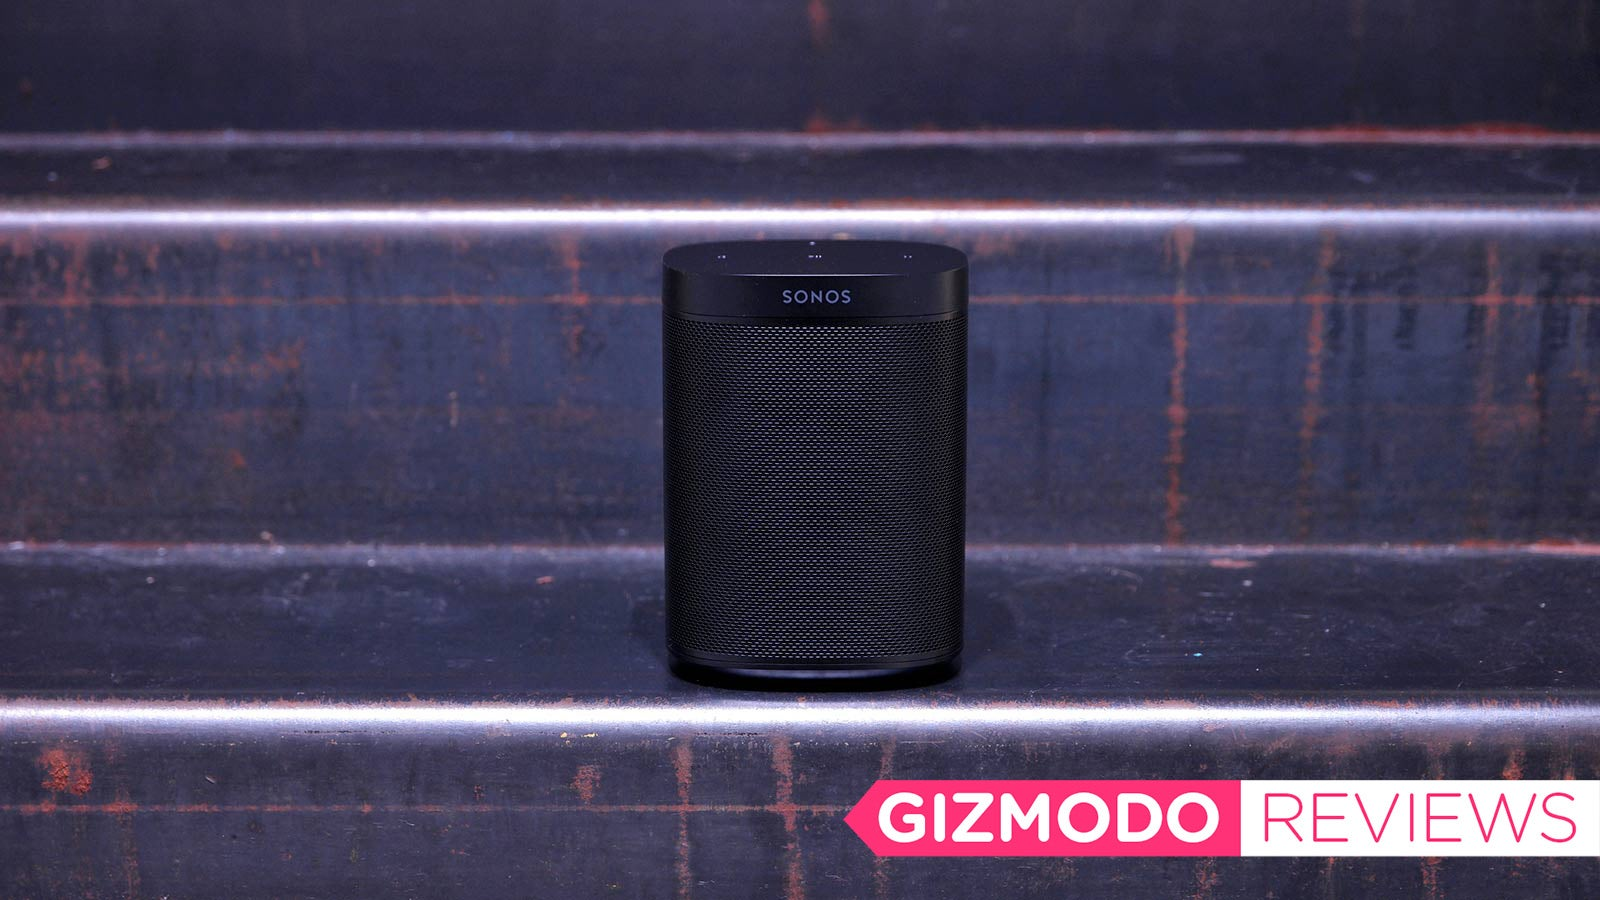 Sonos One: The Gizmodo Review